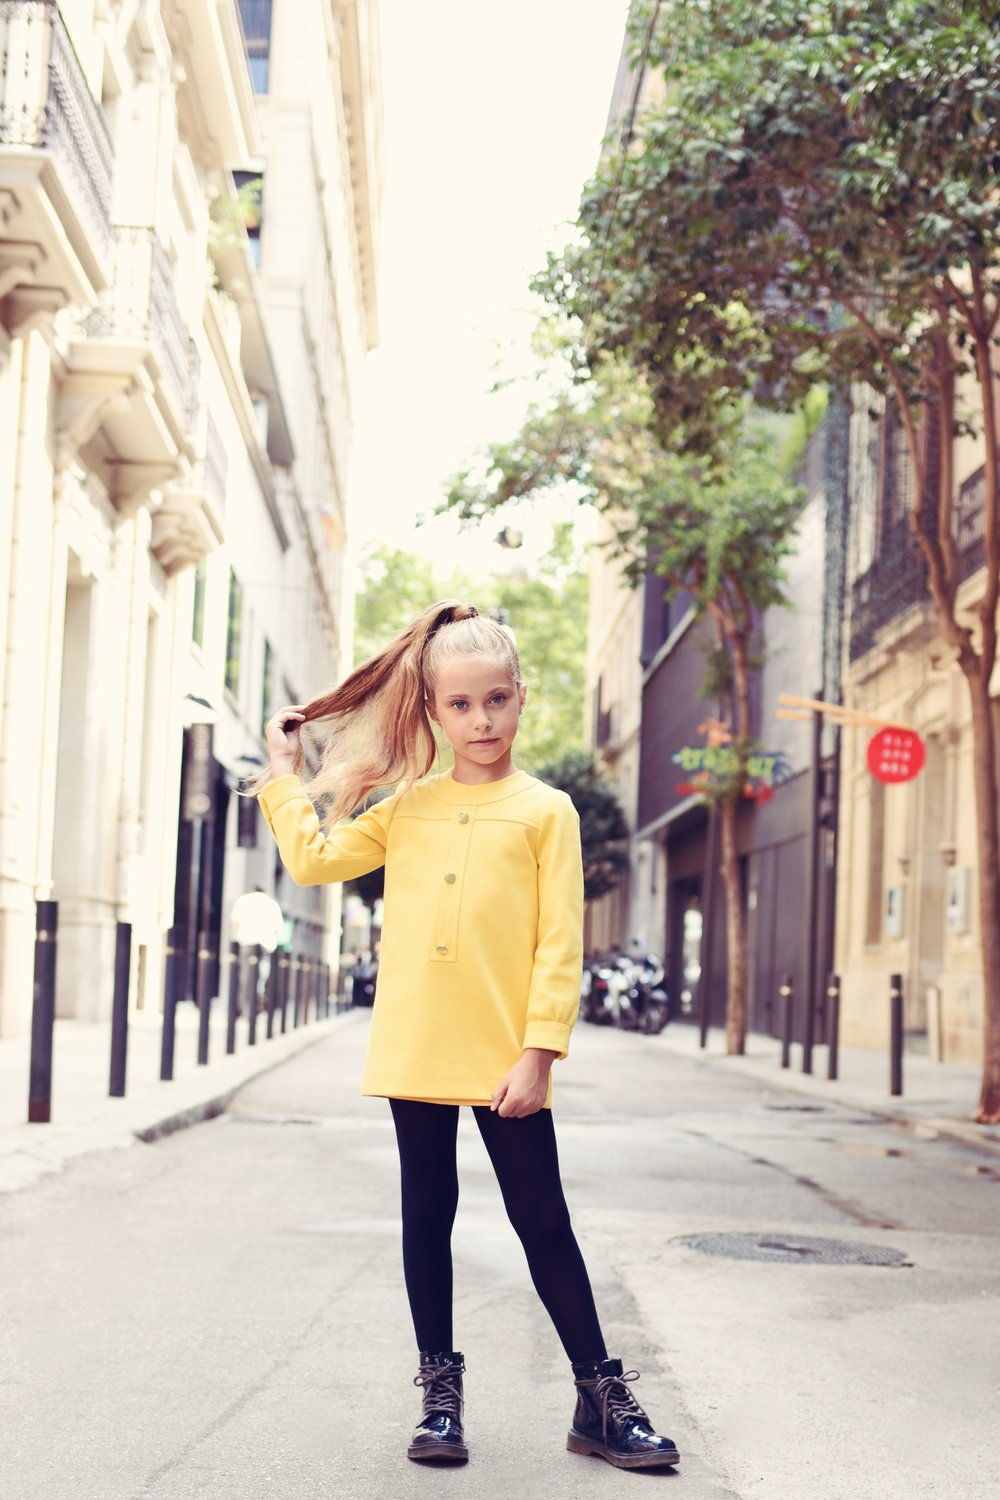 Enfant+Street+Style+by+Gina+Kim+Photography-12.jpeg